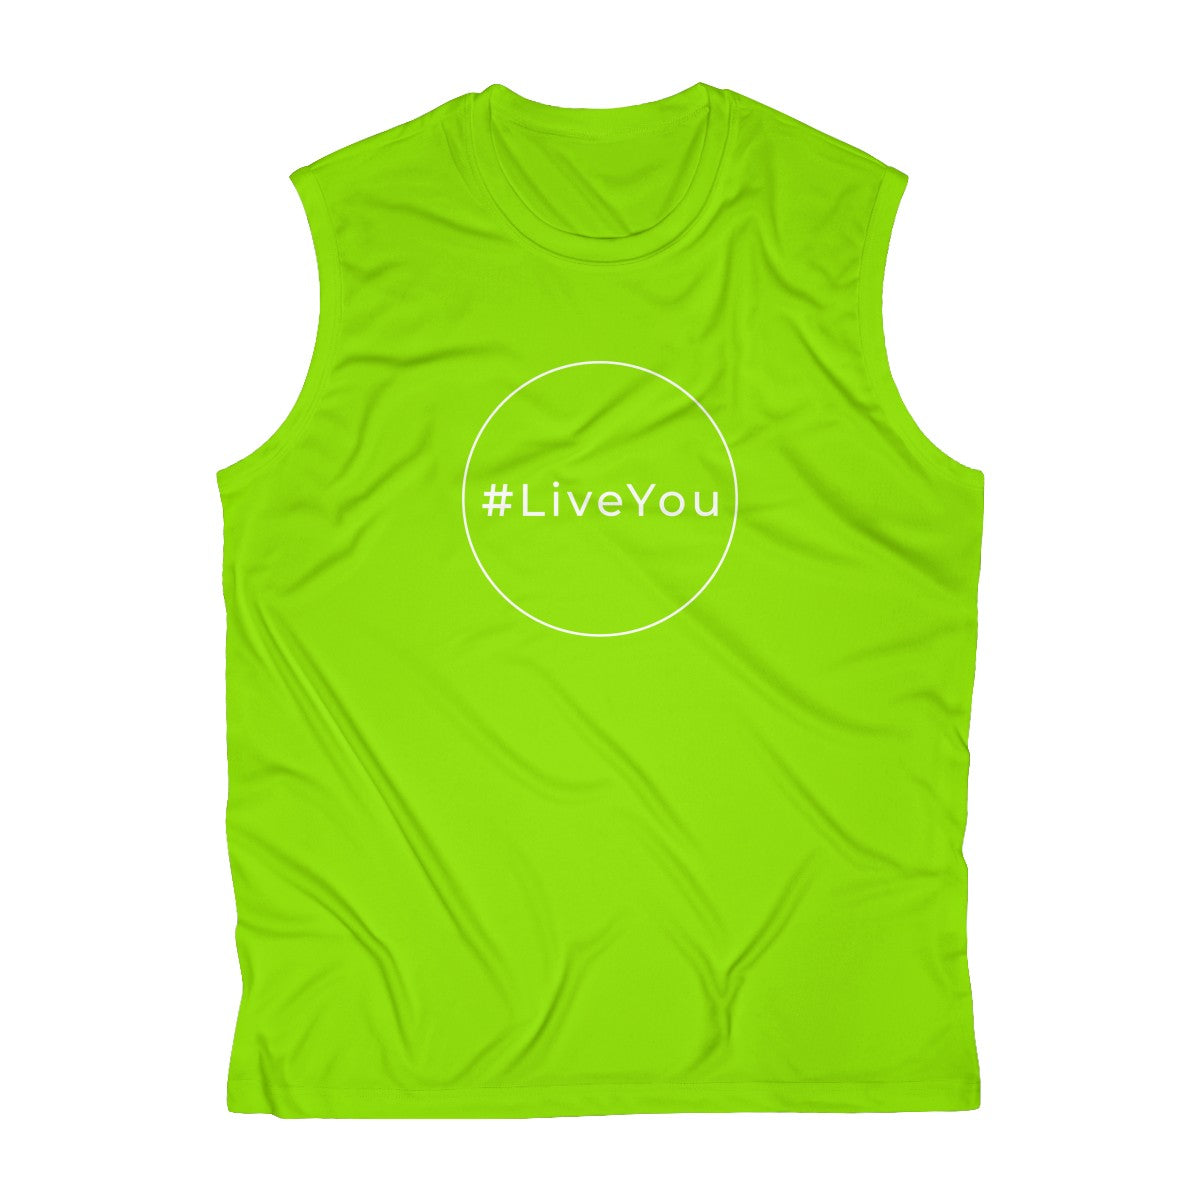 #LiveYou Men's Sleeveless Performance Tee